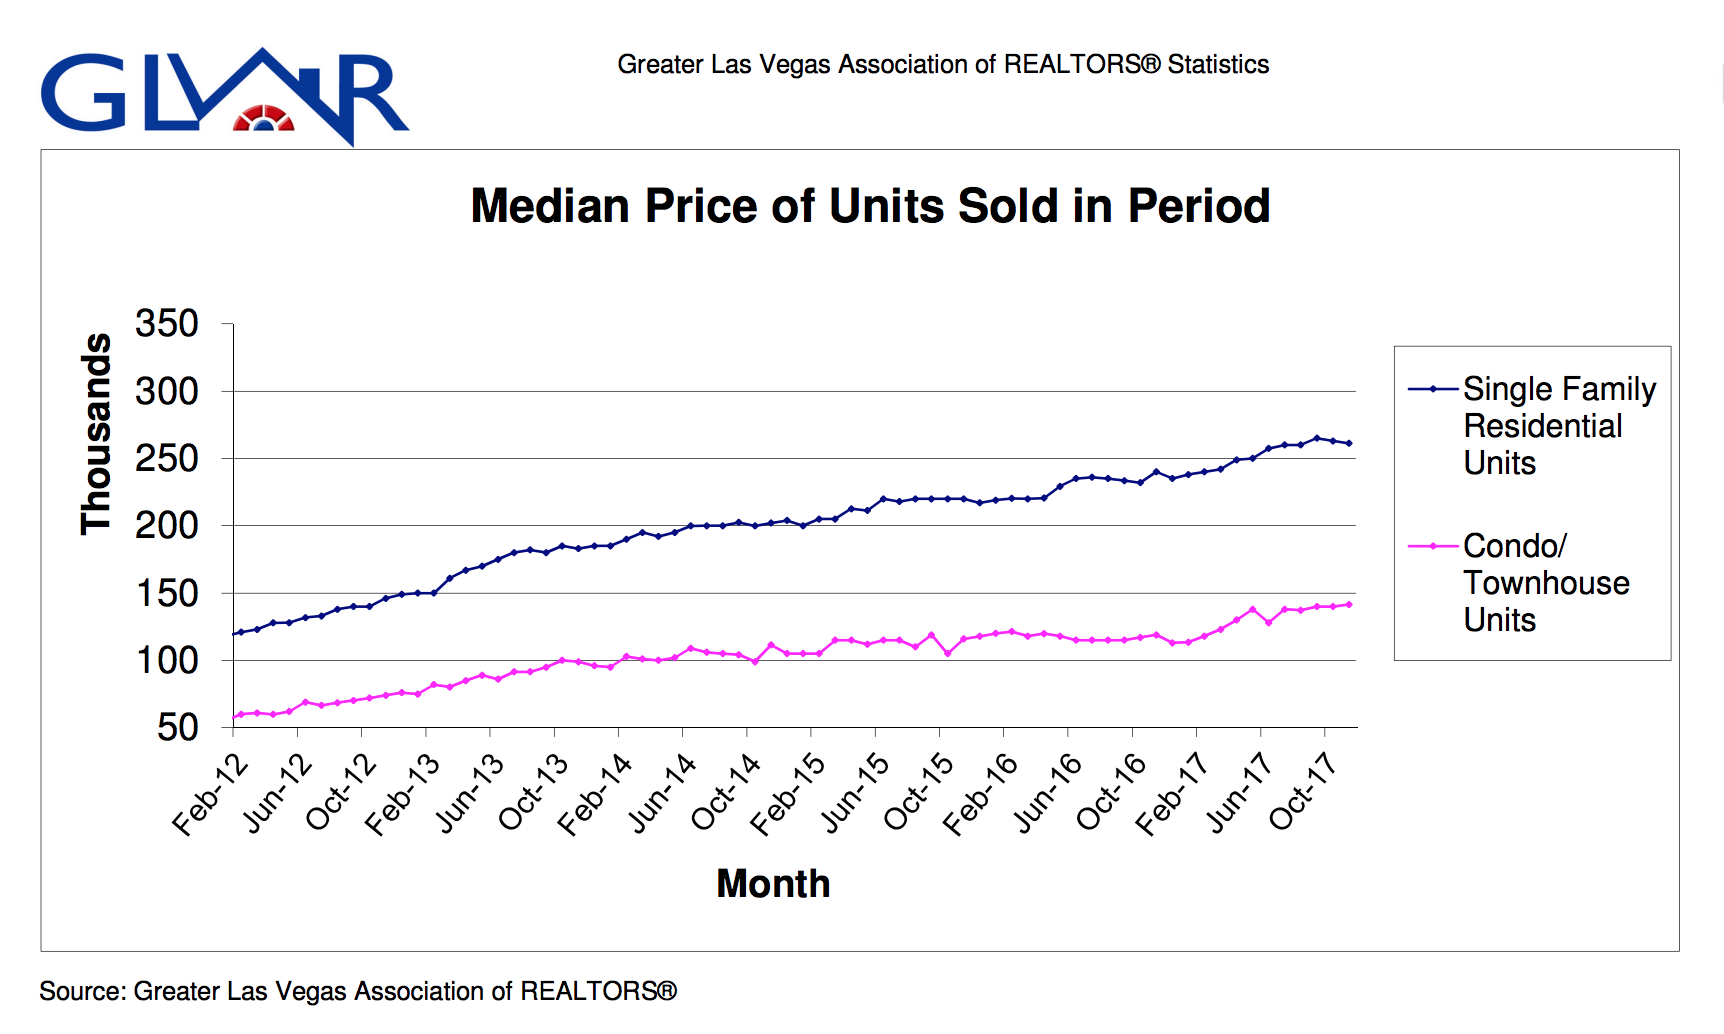 Median Price of Units Sold